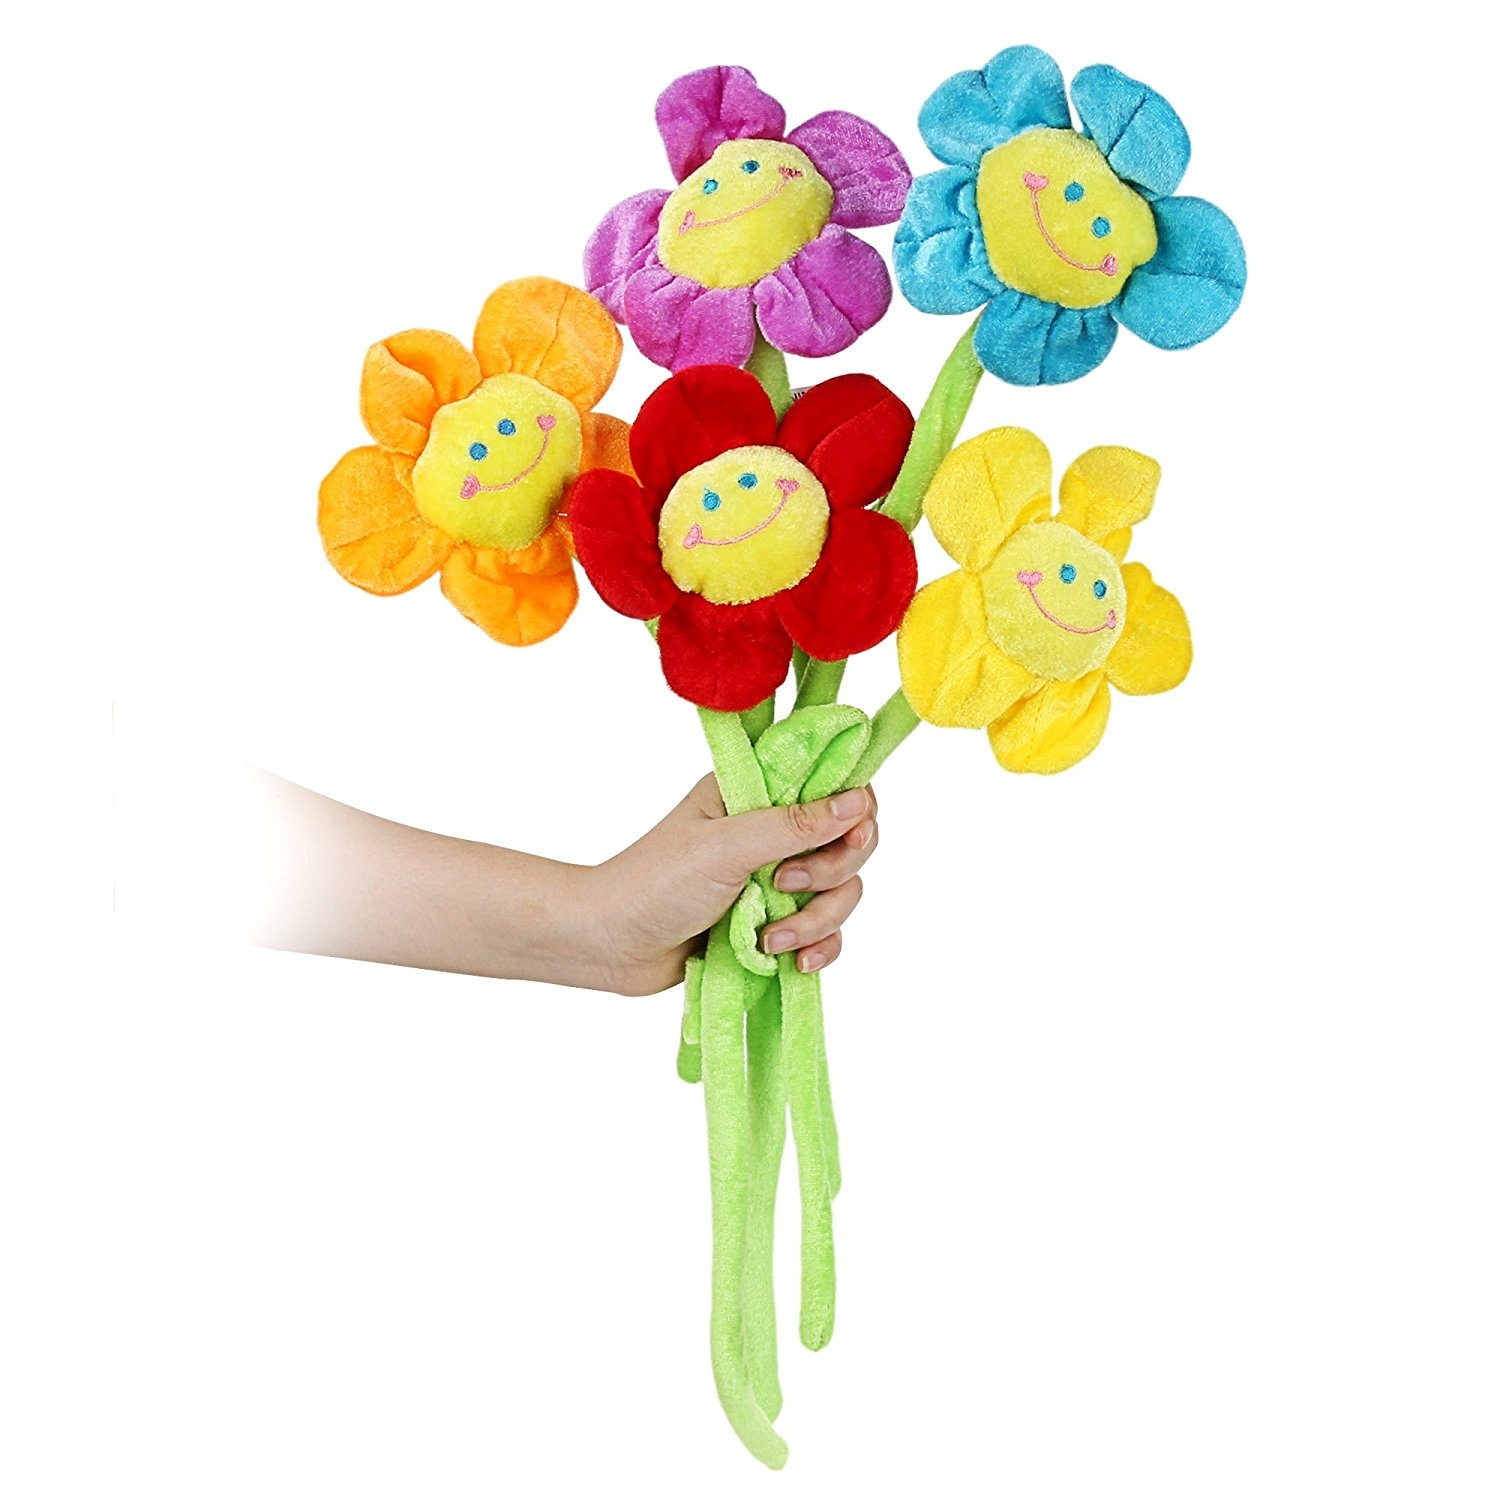 Plush Daisy Flower With Smiley Happy Faces Colorful Soft Bendable